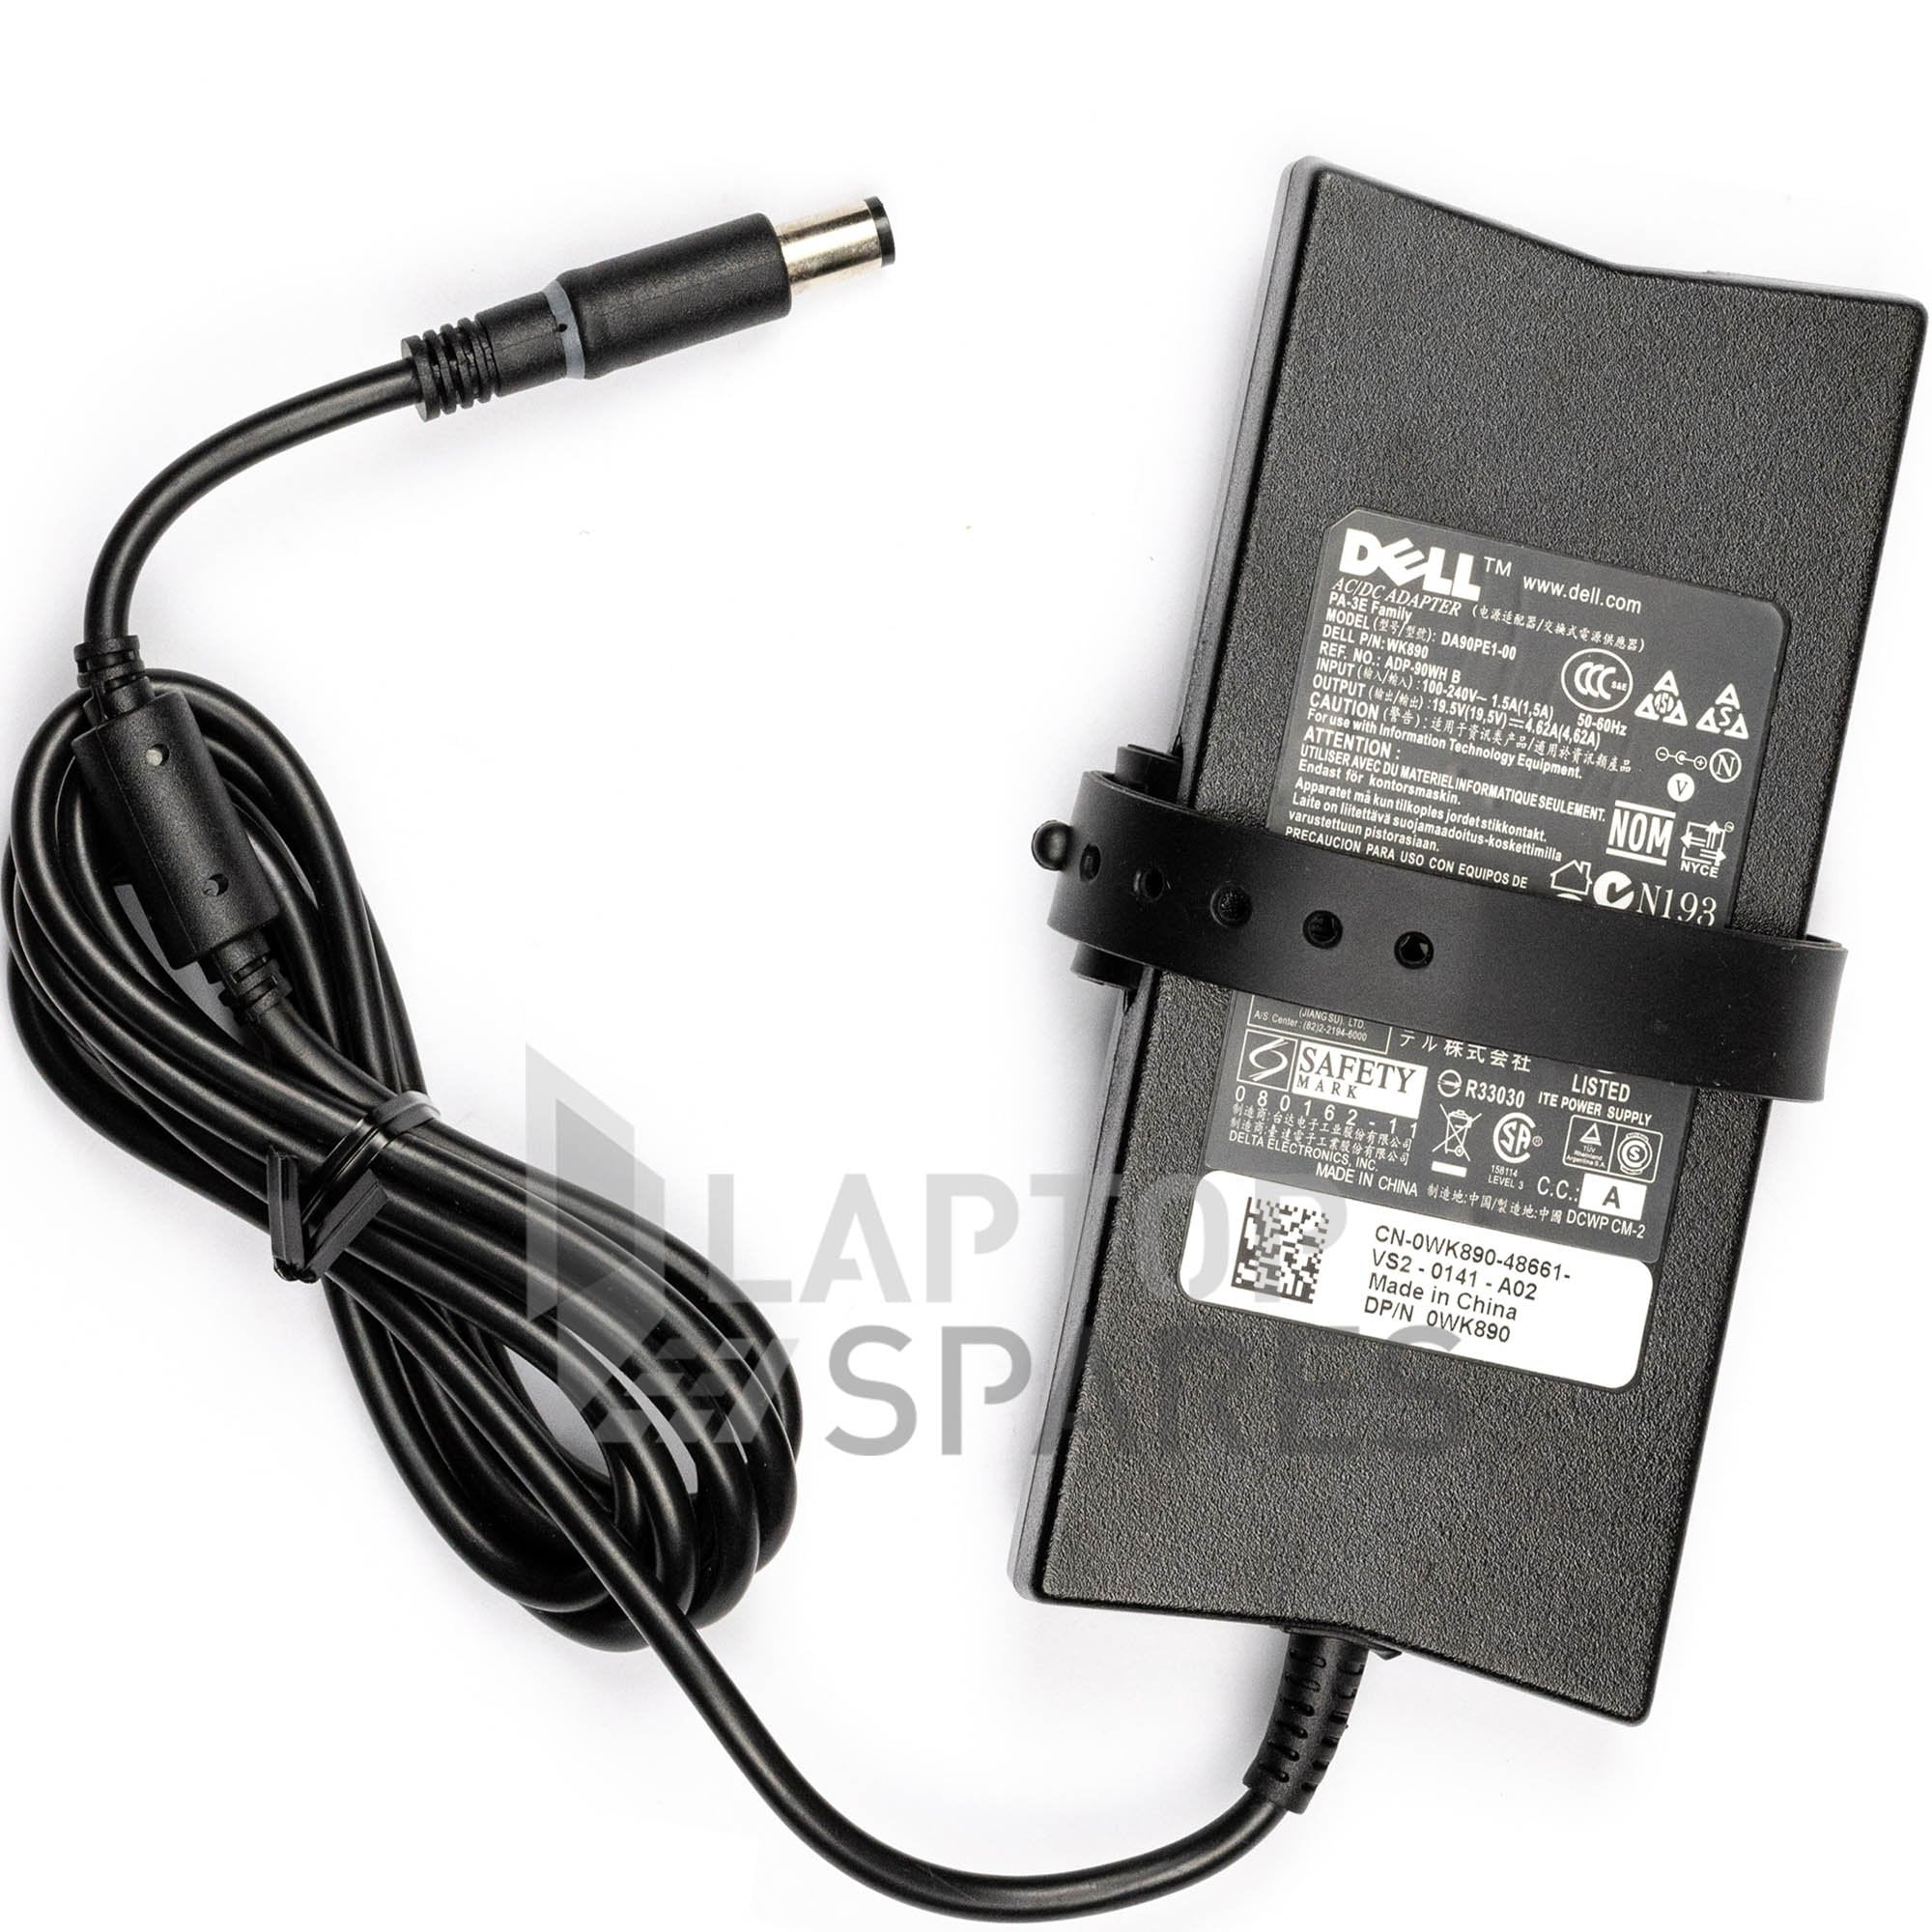 Dell Inspiron 14R 5421 Laptop Slim AC Adapter Charger